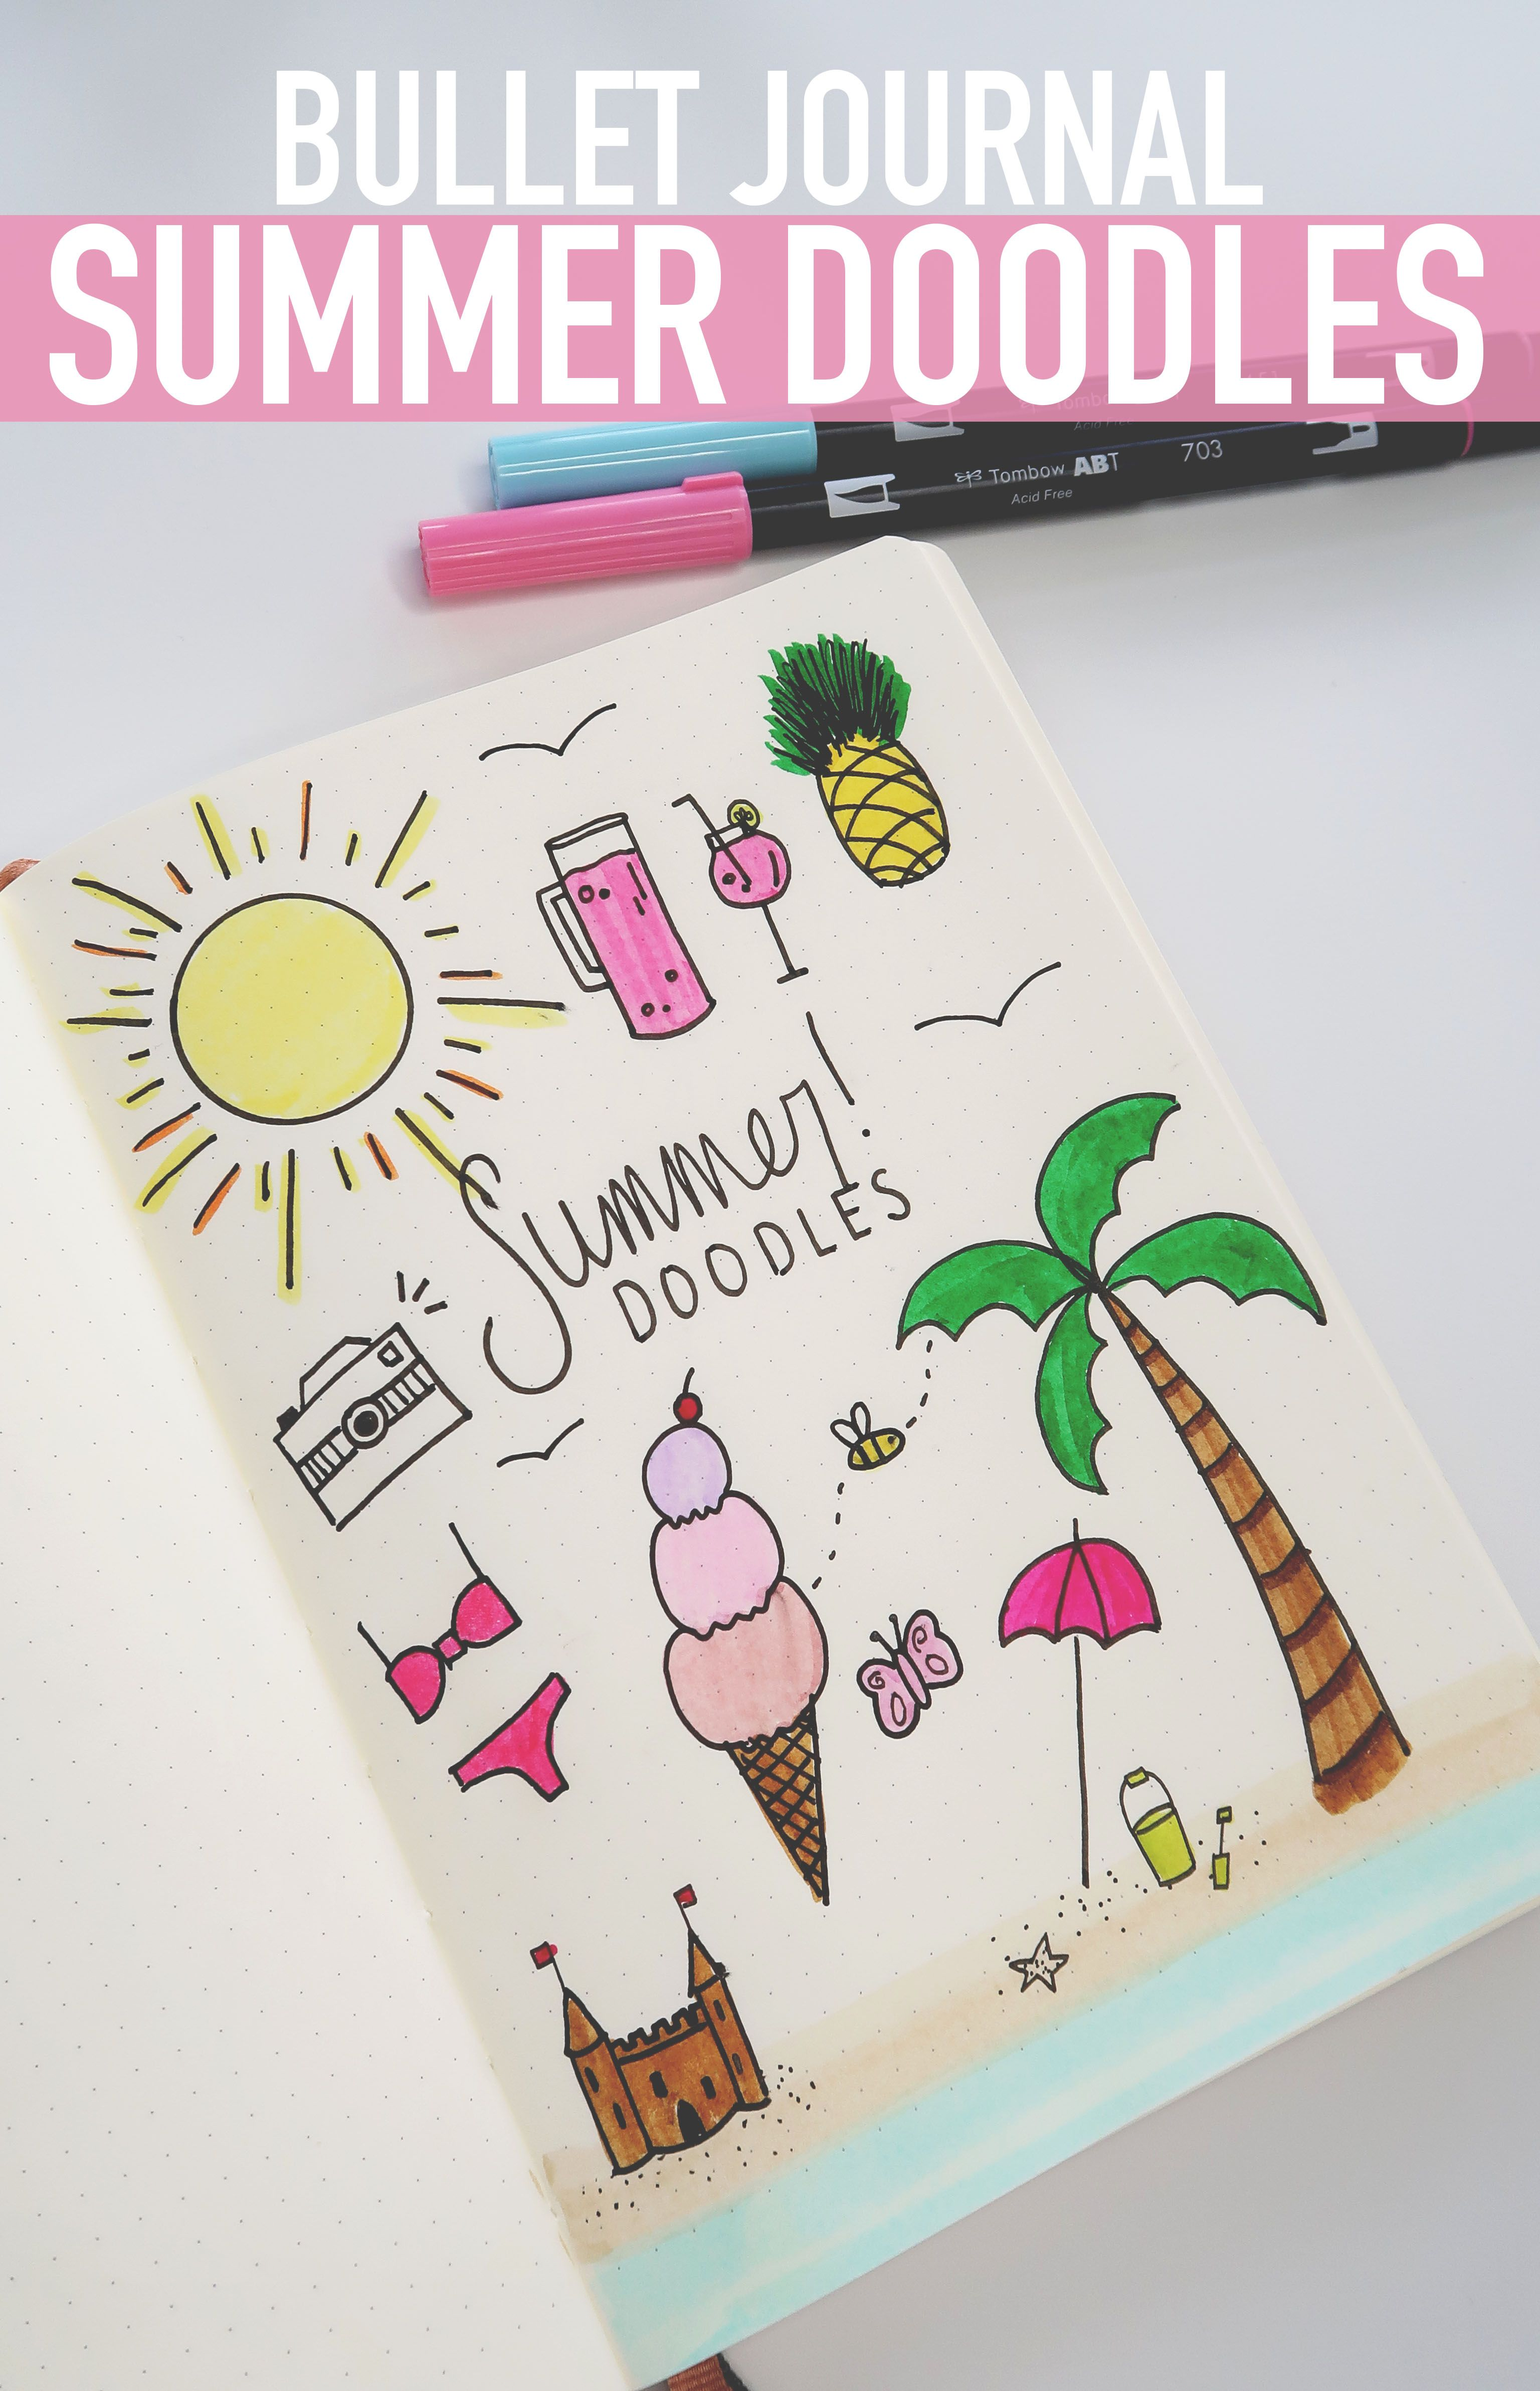 Bullet Journal Summer Doodles How To Doodle Tutorial With Images